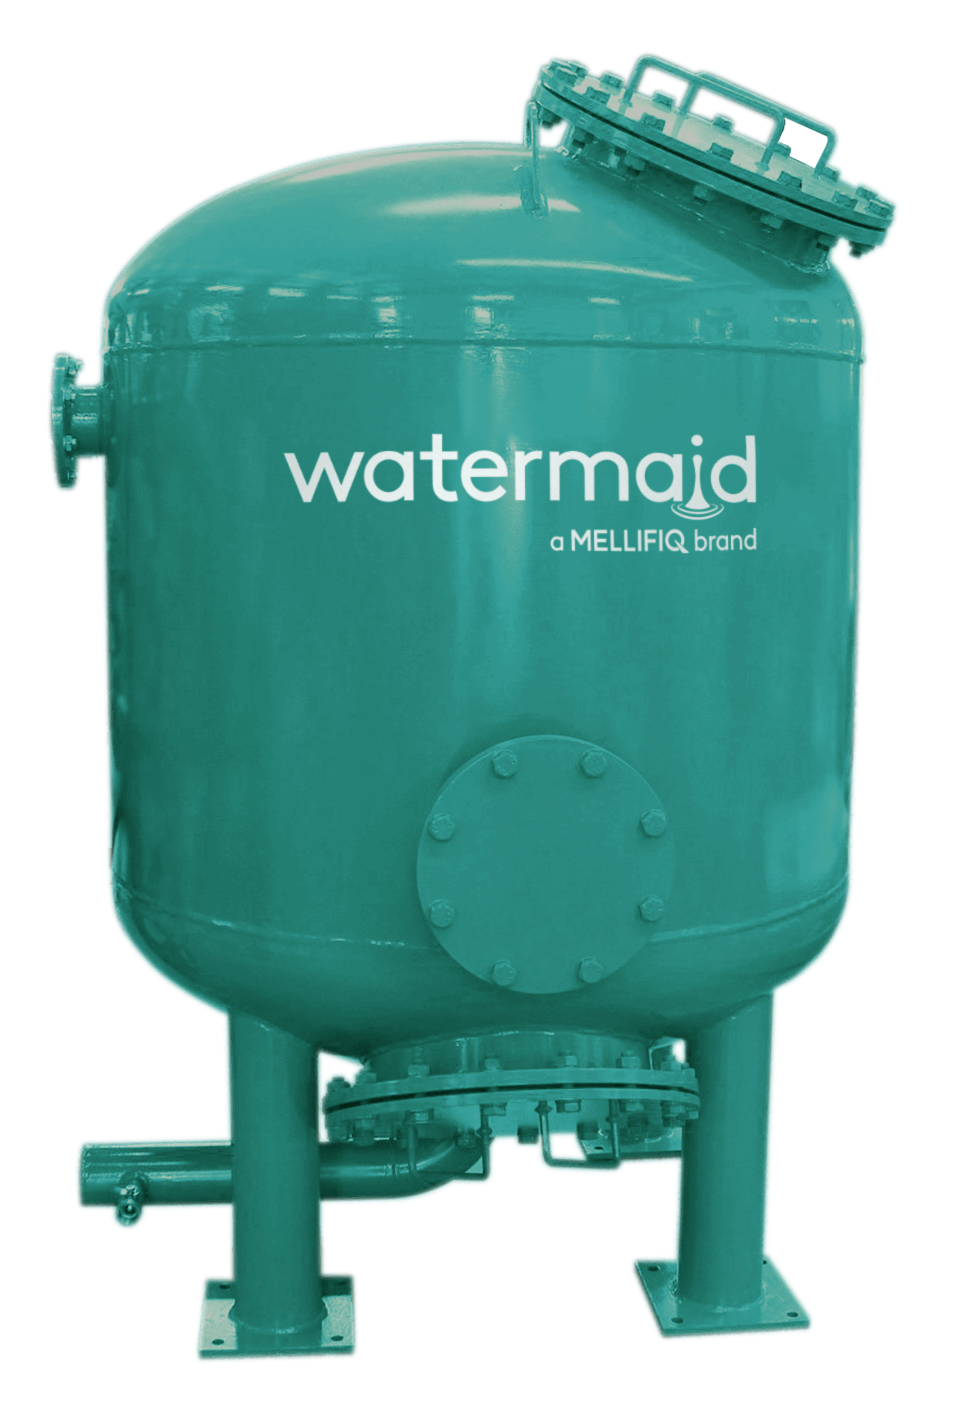 Watermaid Water filter tank for water treatment